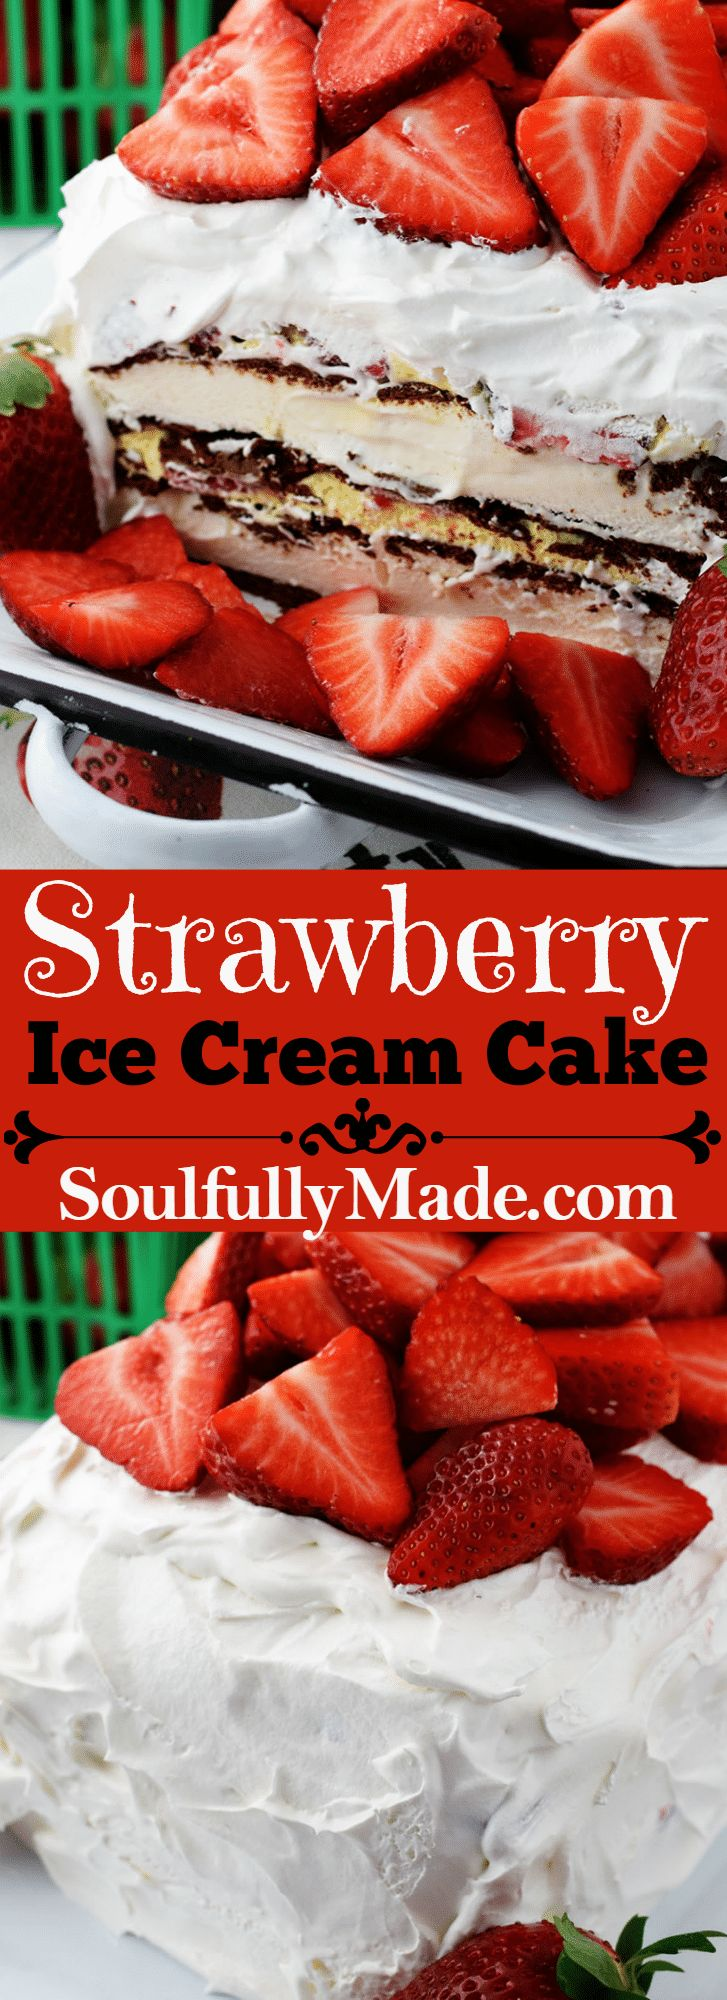 NoBakeStrawberry Ice Cream Cake is an easy dessert made with layers of ice cream sandwiches, a creamy marshmallow pudding, whipped topping anddelicious andnutritiousFlorida Strawberries! @Flastrawberries #SundaySupper #FLStrawberry #desserts